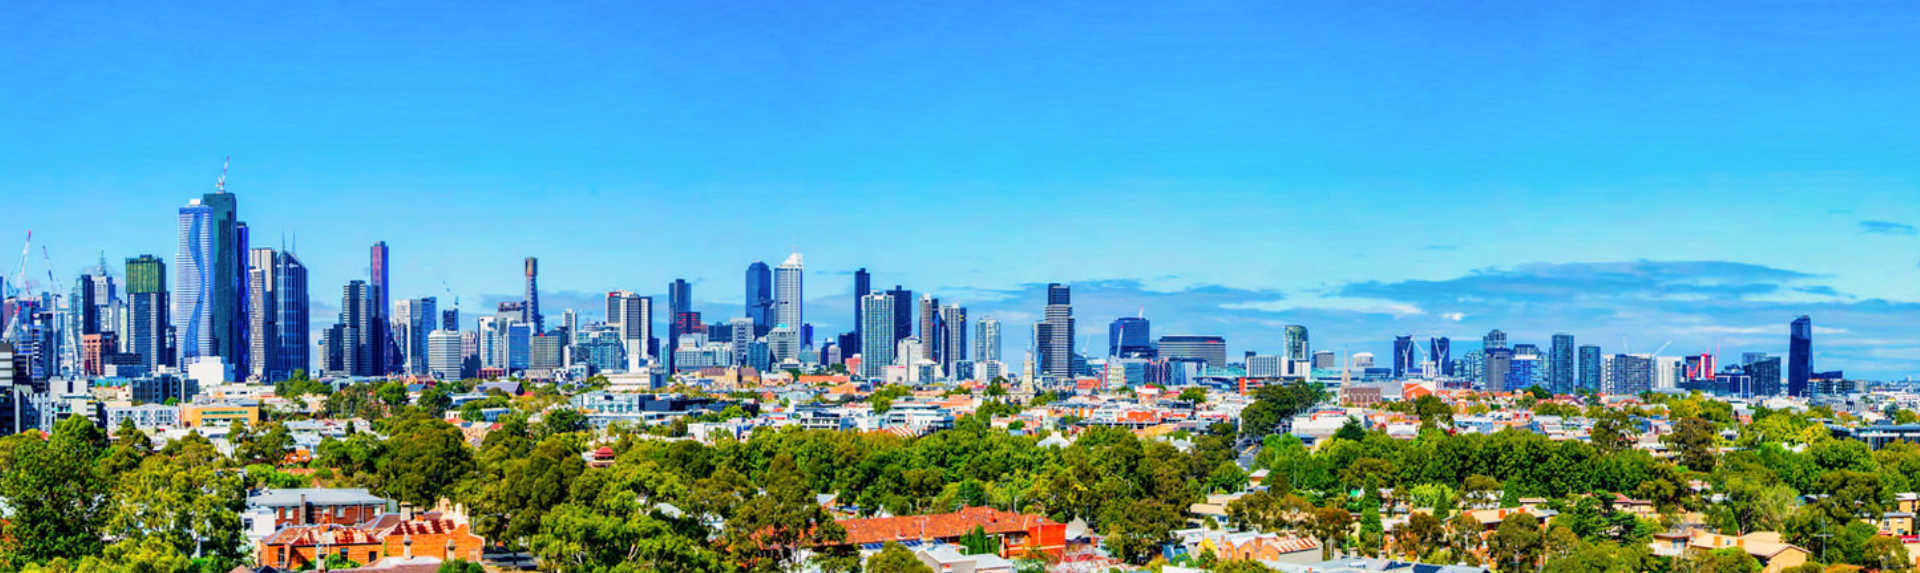 Where should I go for a day trip in Melbourne?